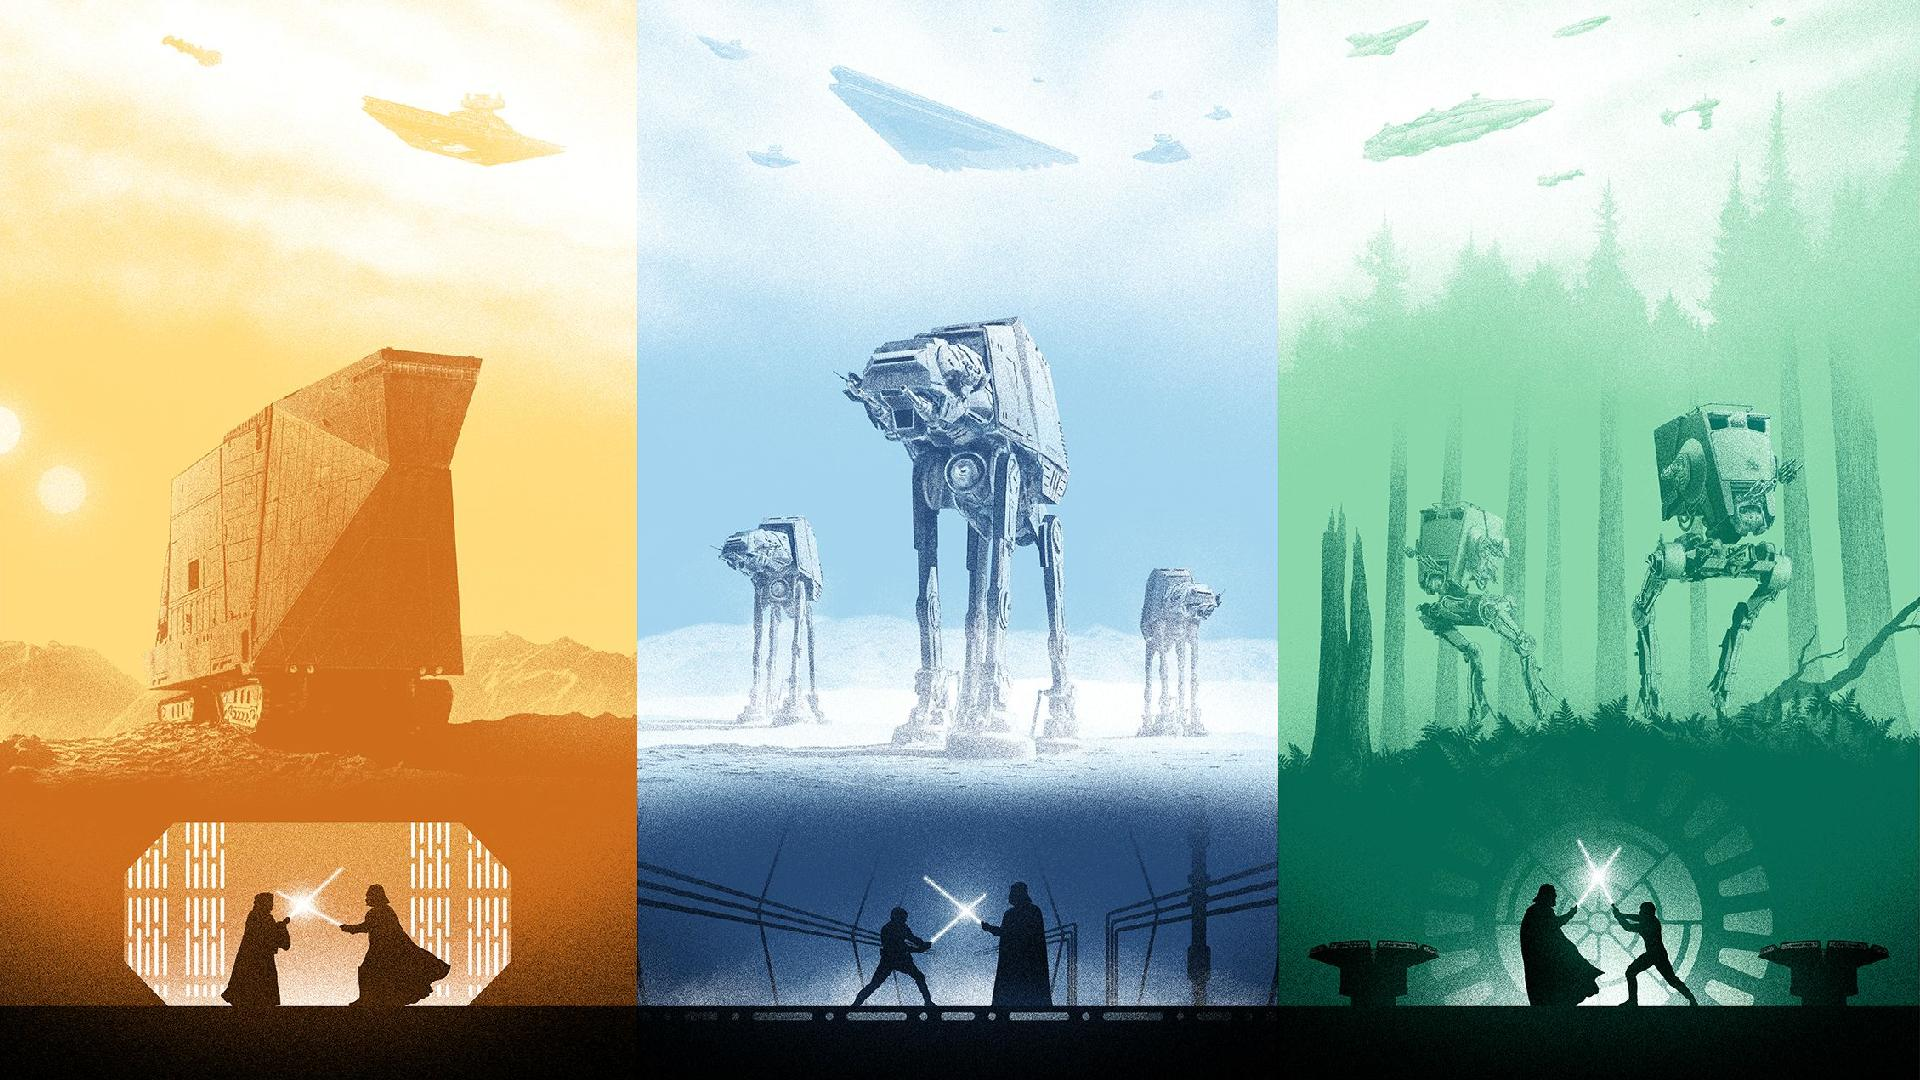 Image_1_YLRKj The Best Star Wars Posters: Originals and fan-made ones